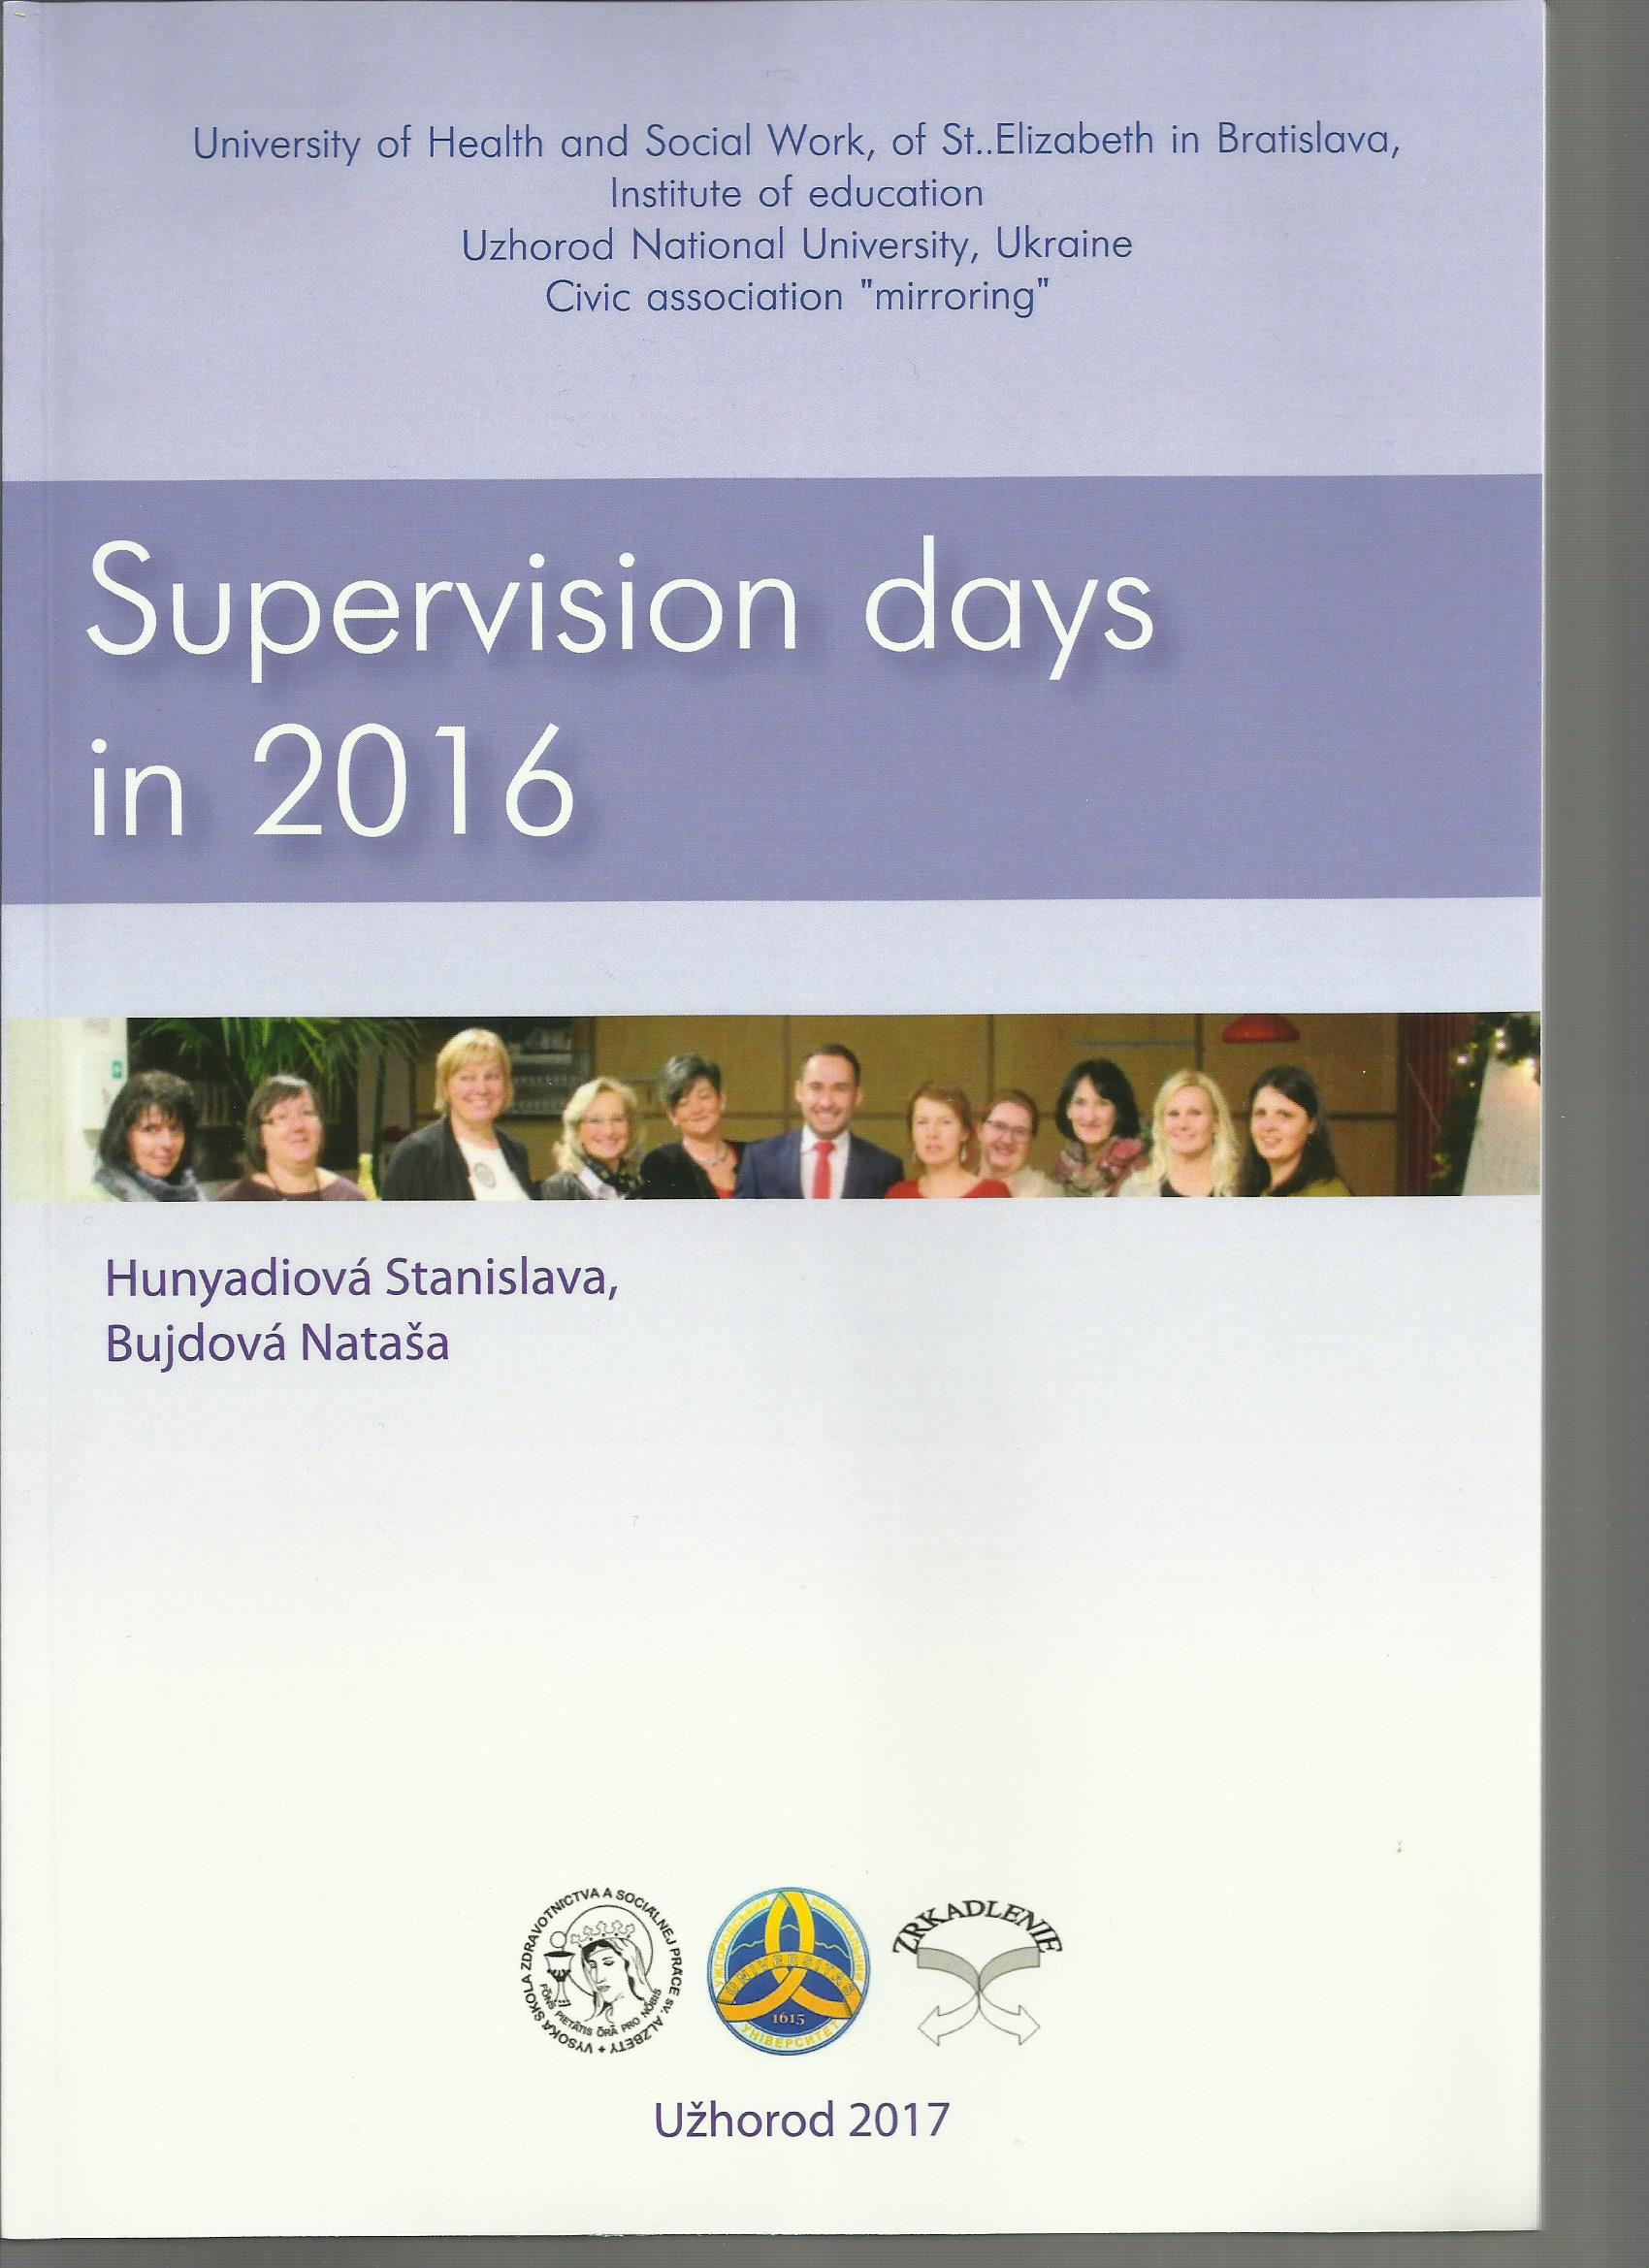 Supervision days in 2016